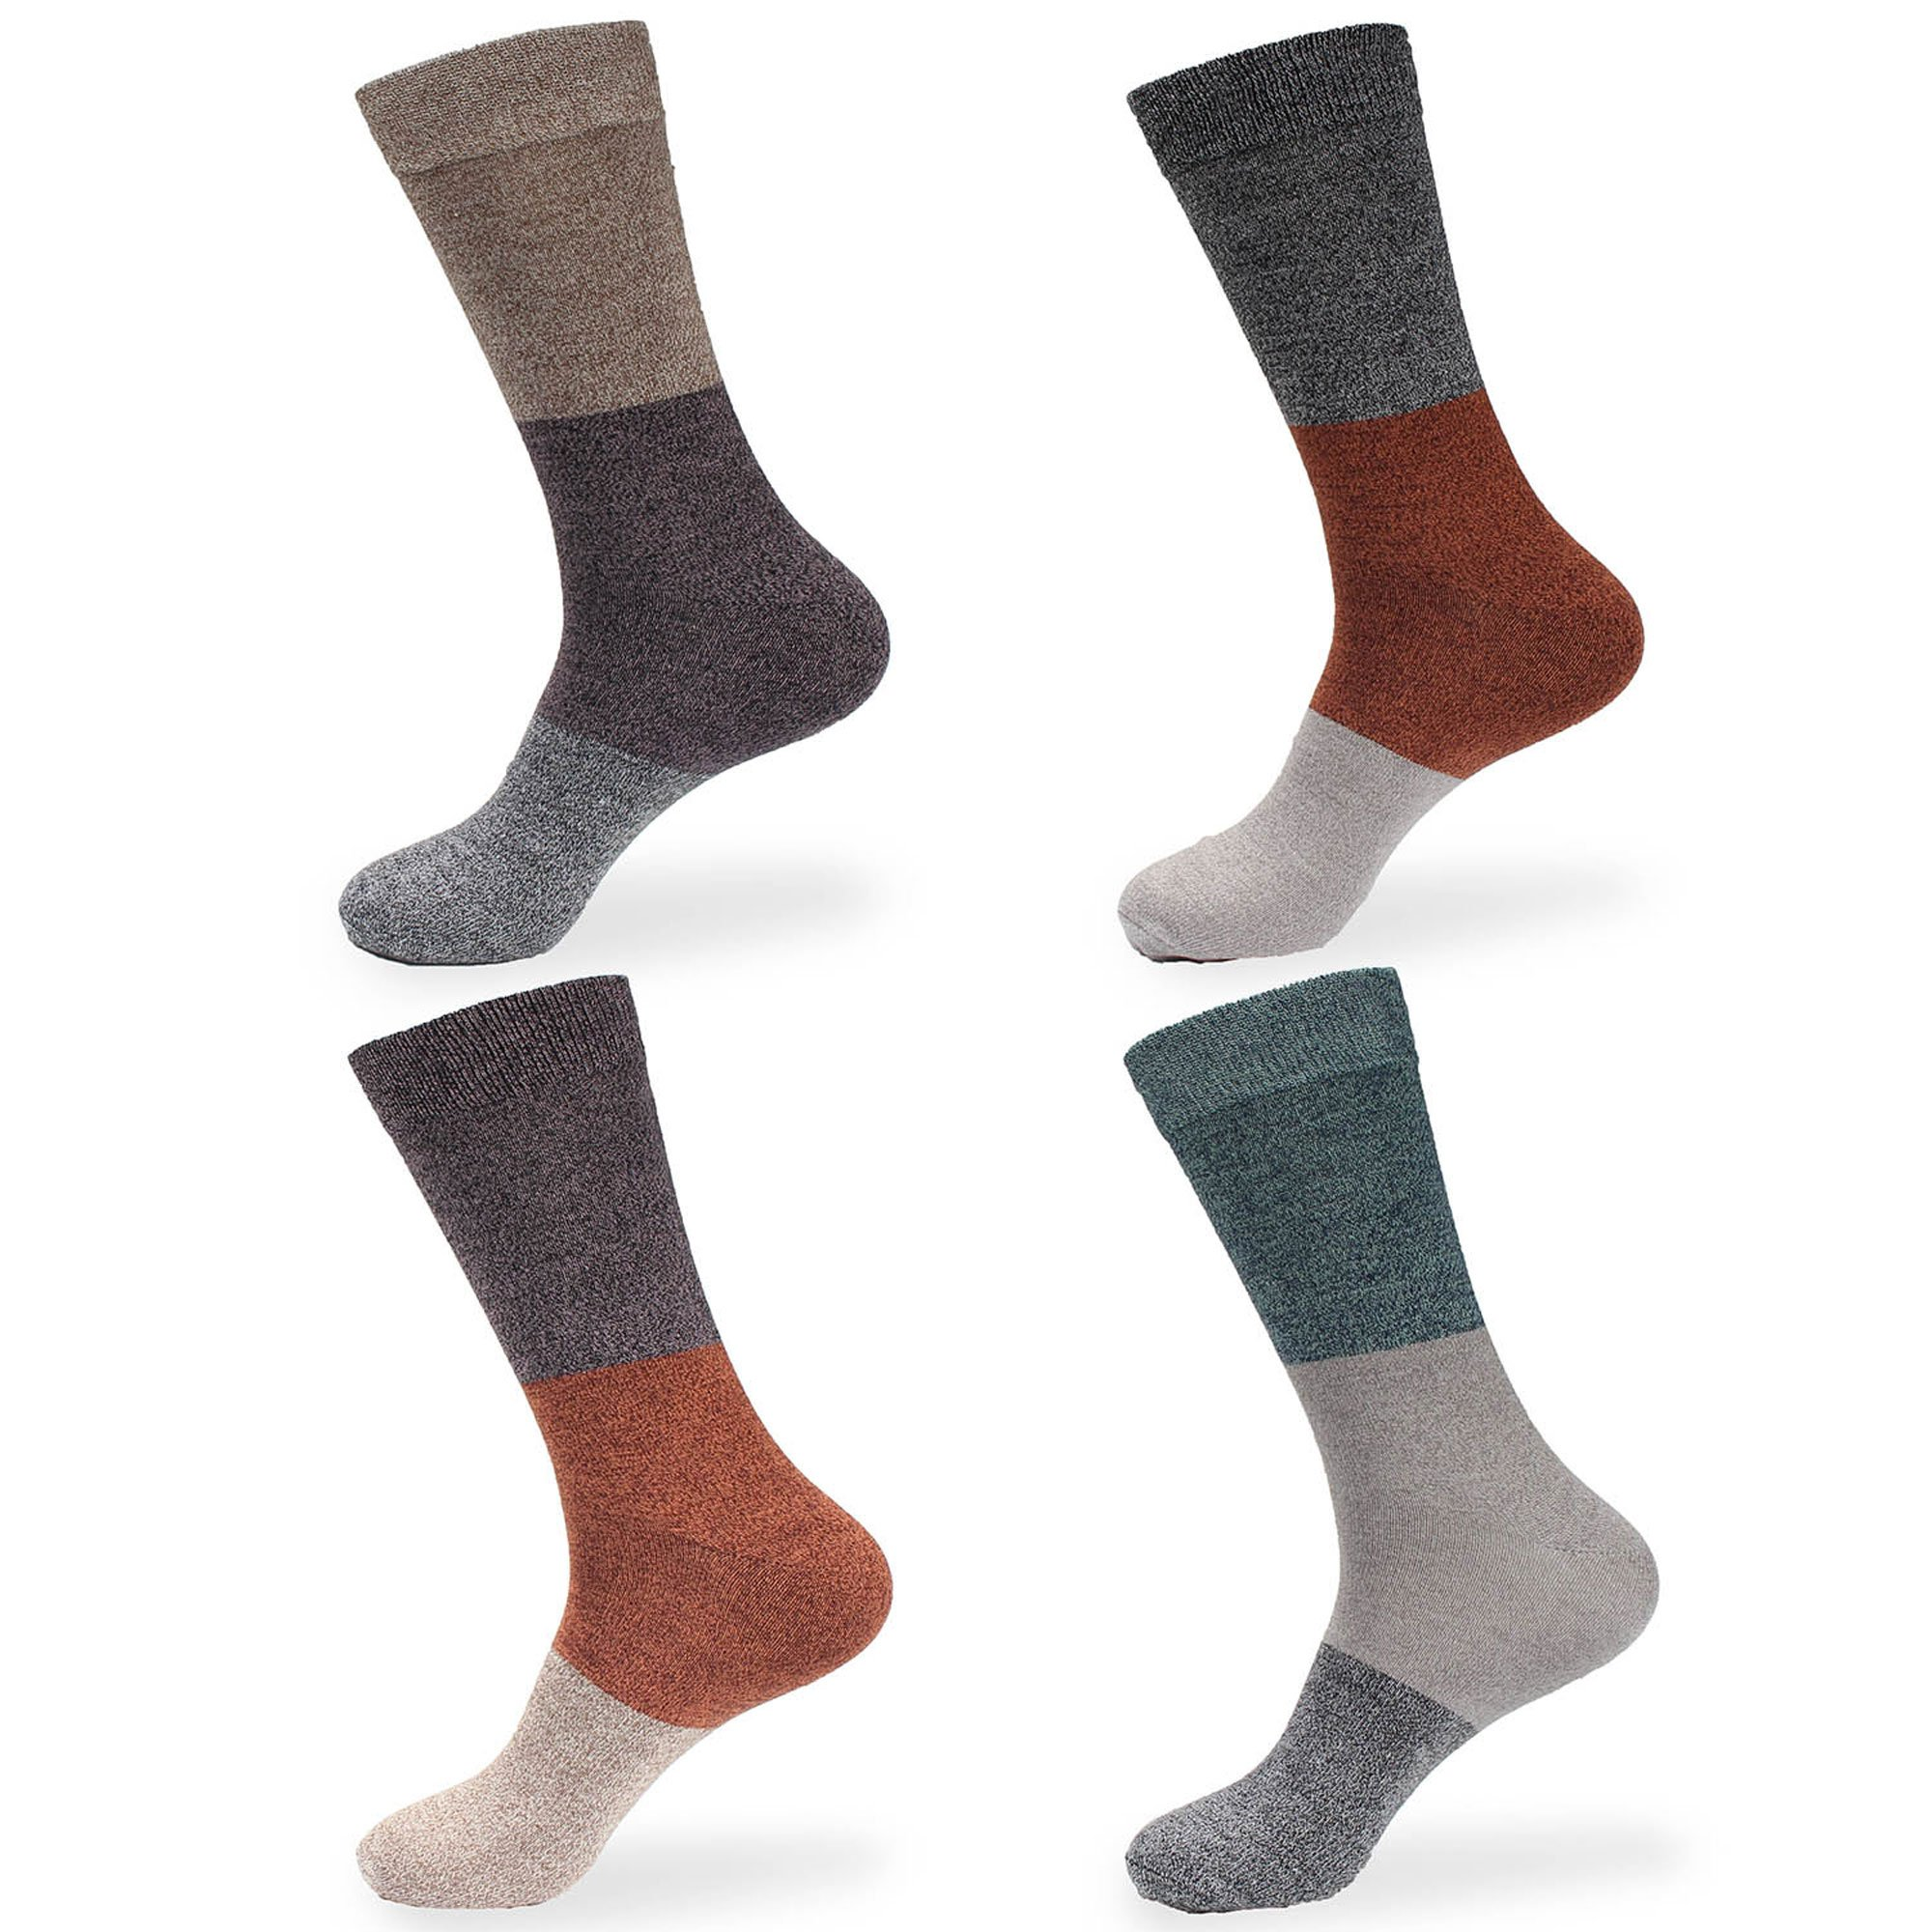 Women's Extra Large Rayon from Bamboo Fiber Classic Casual Crew Socks - Assortment C - 4prs, Size 10-13